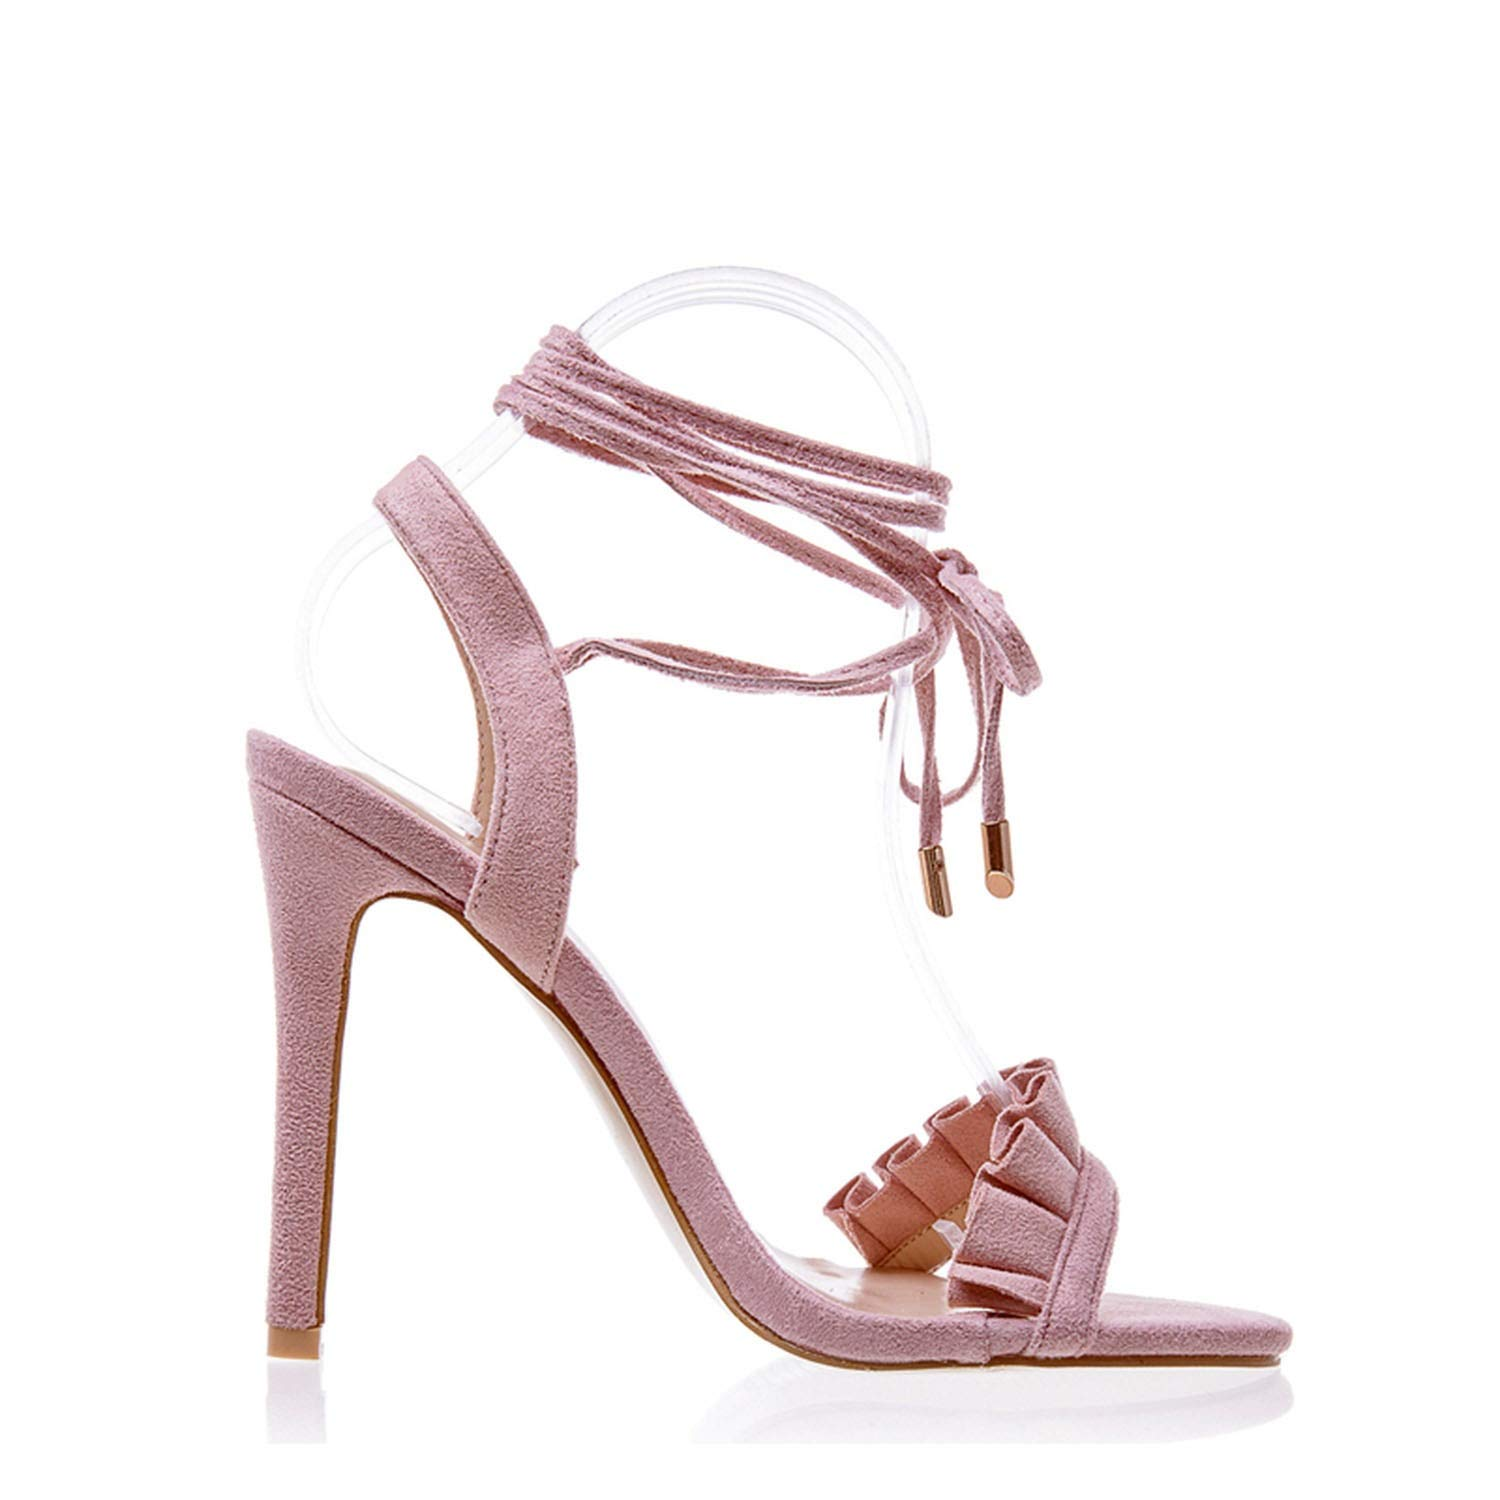 High Heel Sandals Women Cross Strappy Sandals Women Summer Shoes Woman High Sandals Heel,Pink,8.5